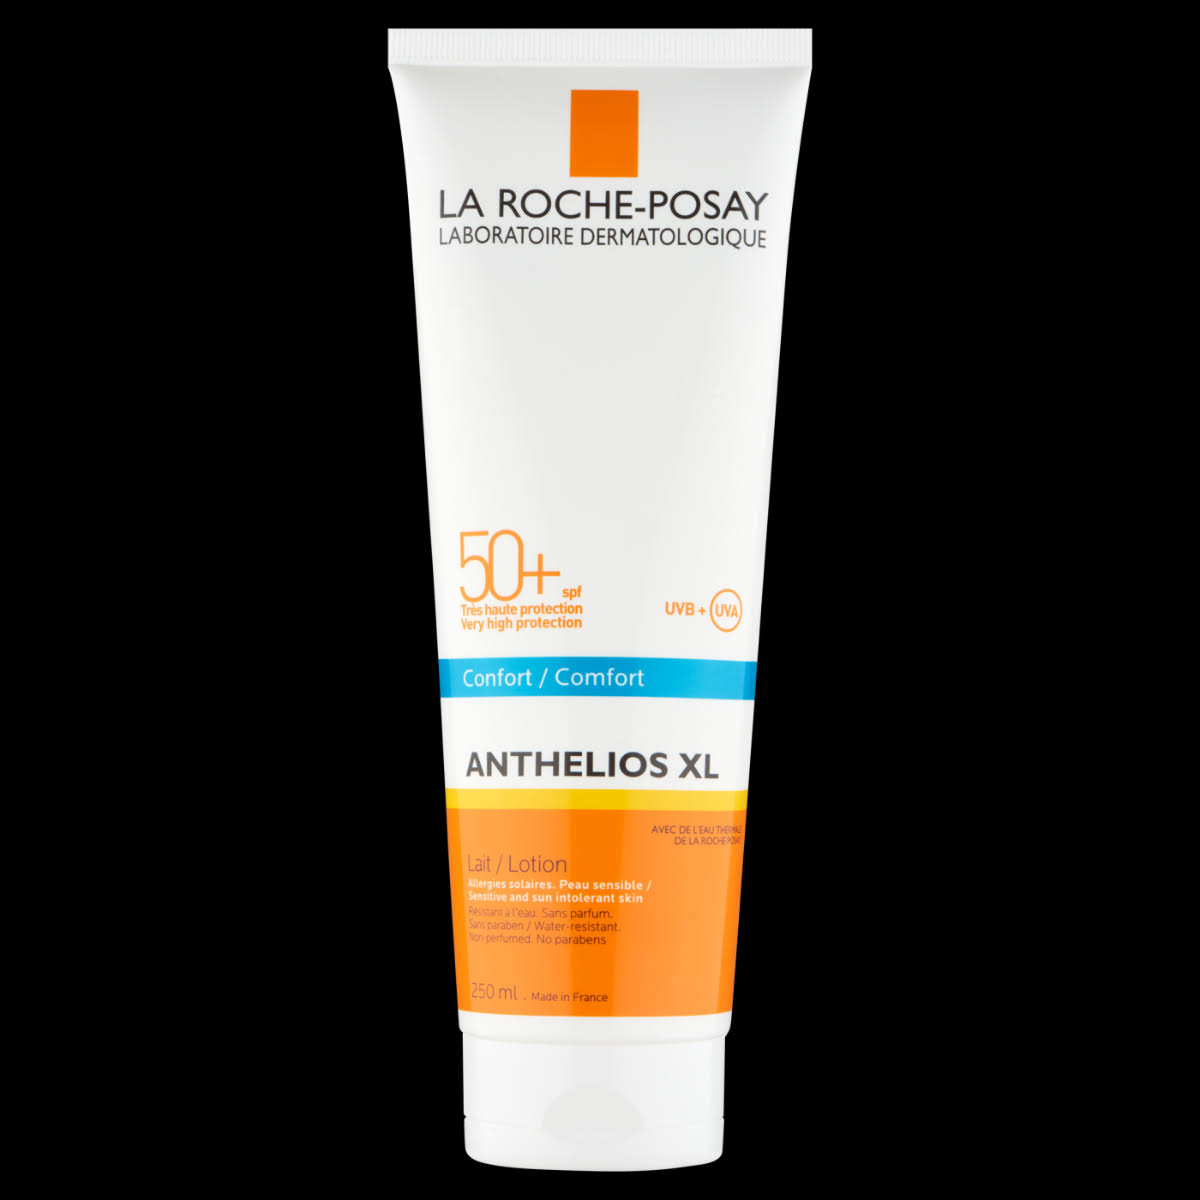 La Roche Posay - Anthelios XL Comfort Lotion SPF50+ 250ml